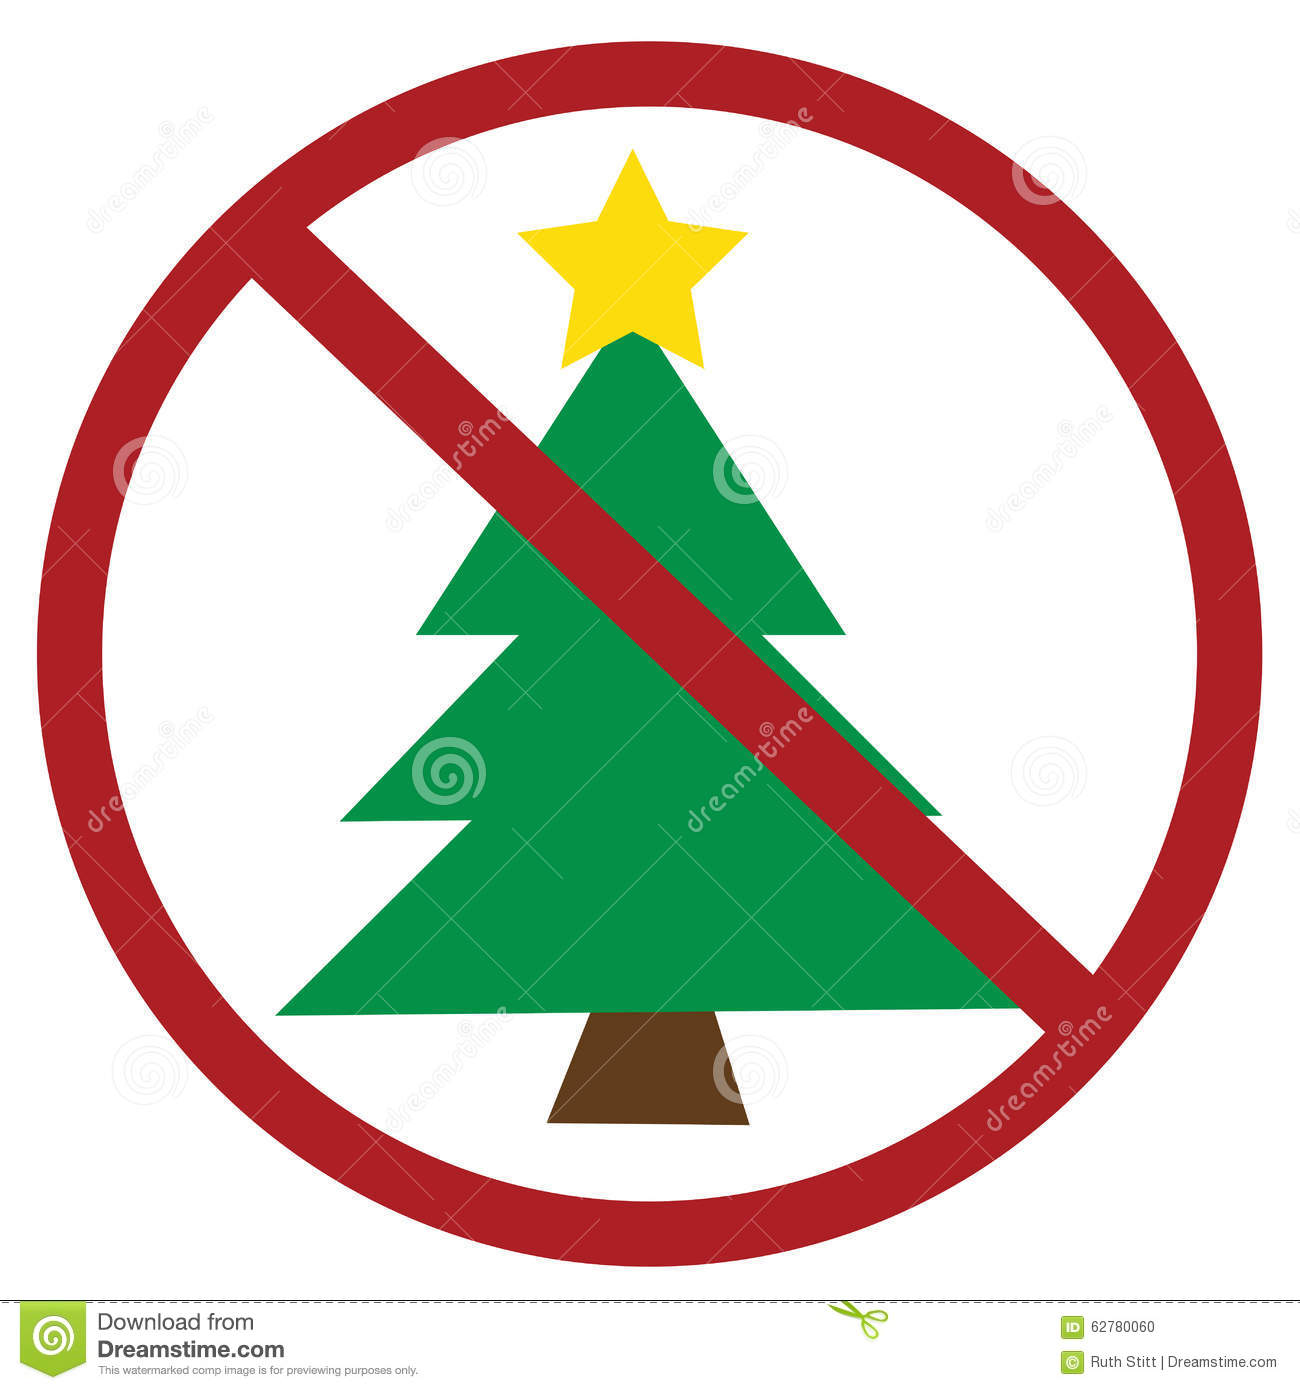 No Christmas stock vector. Illustration of illustration - 62780060